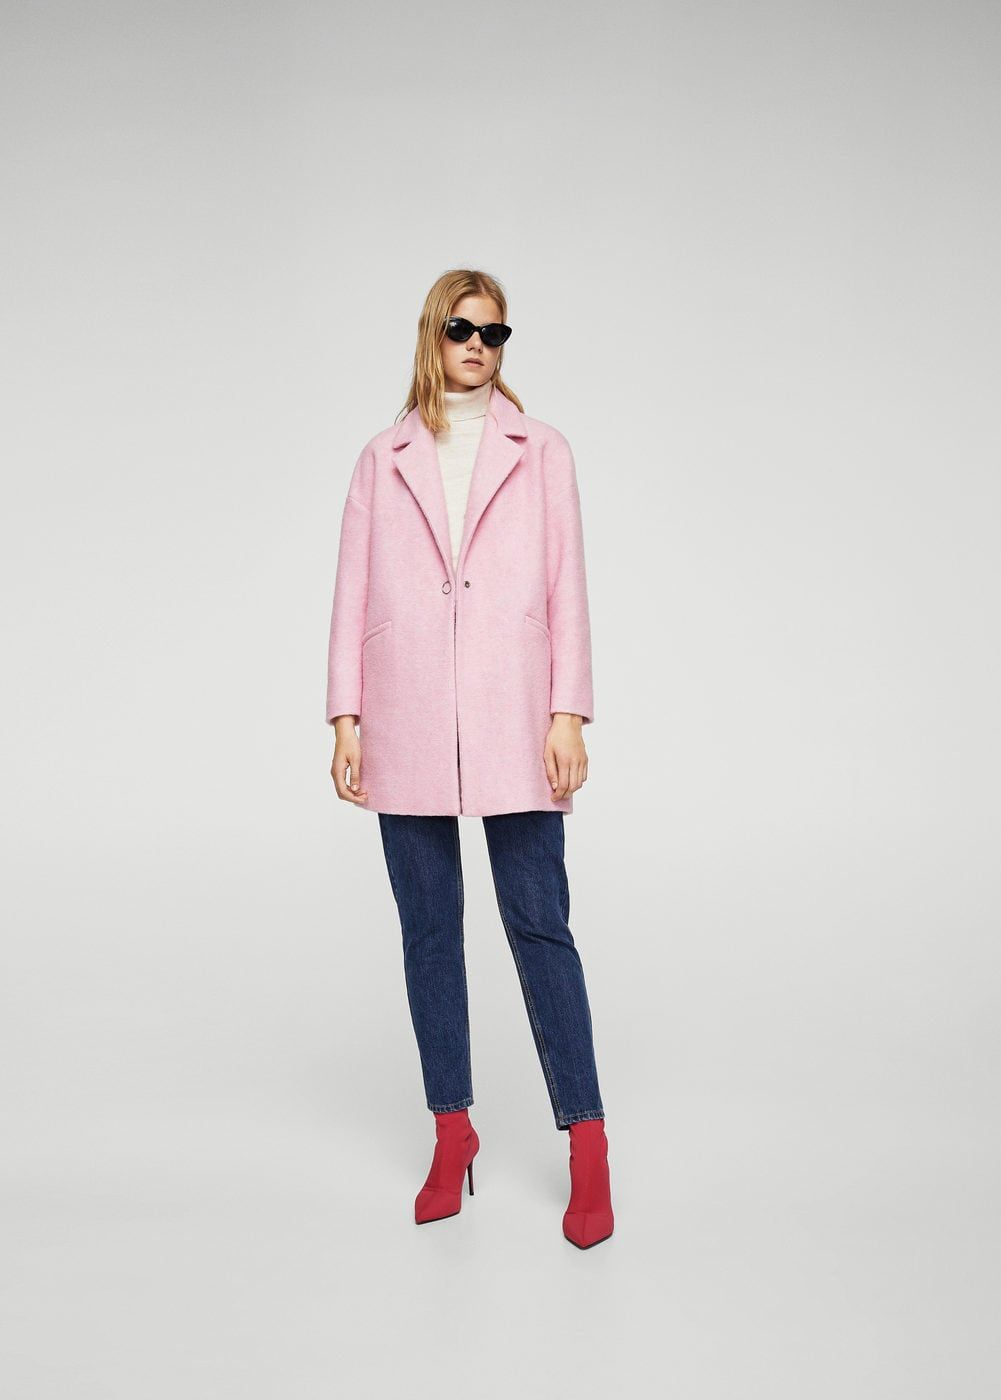 09596c90967f0 Unstructured wool-blend coat - Women in 2019   My Style   Pinterest ...